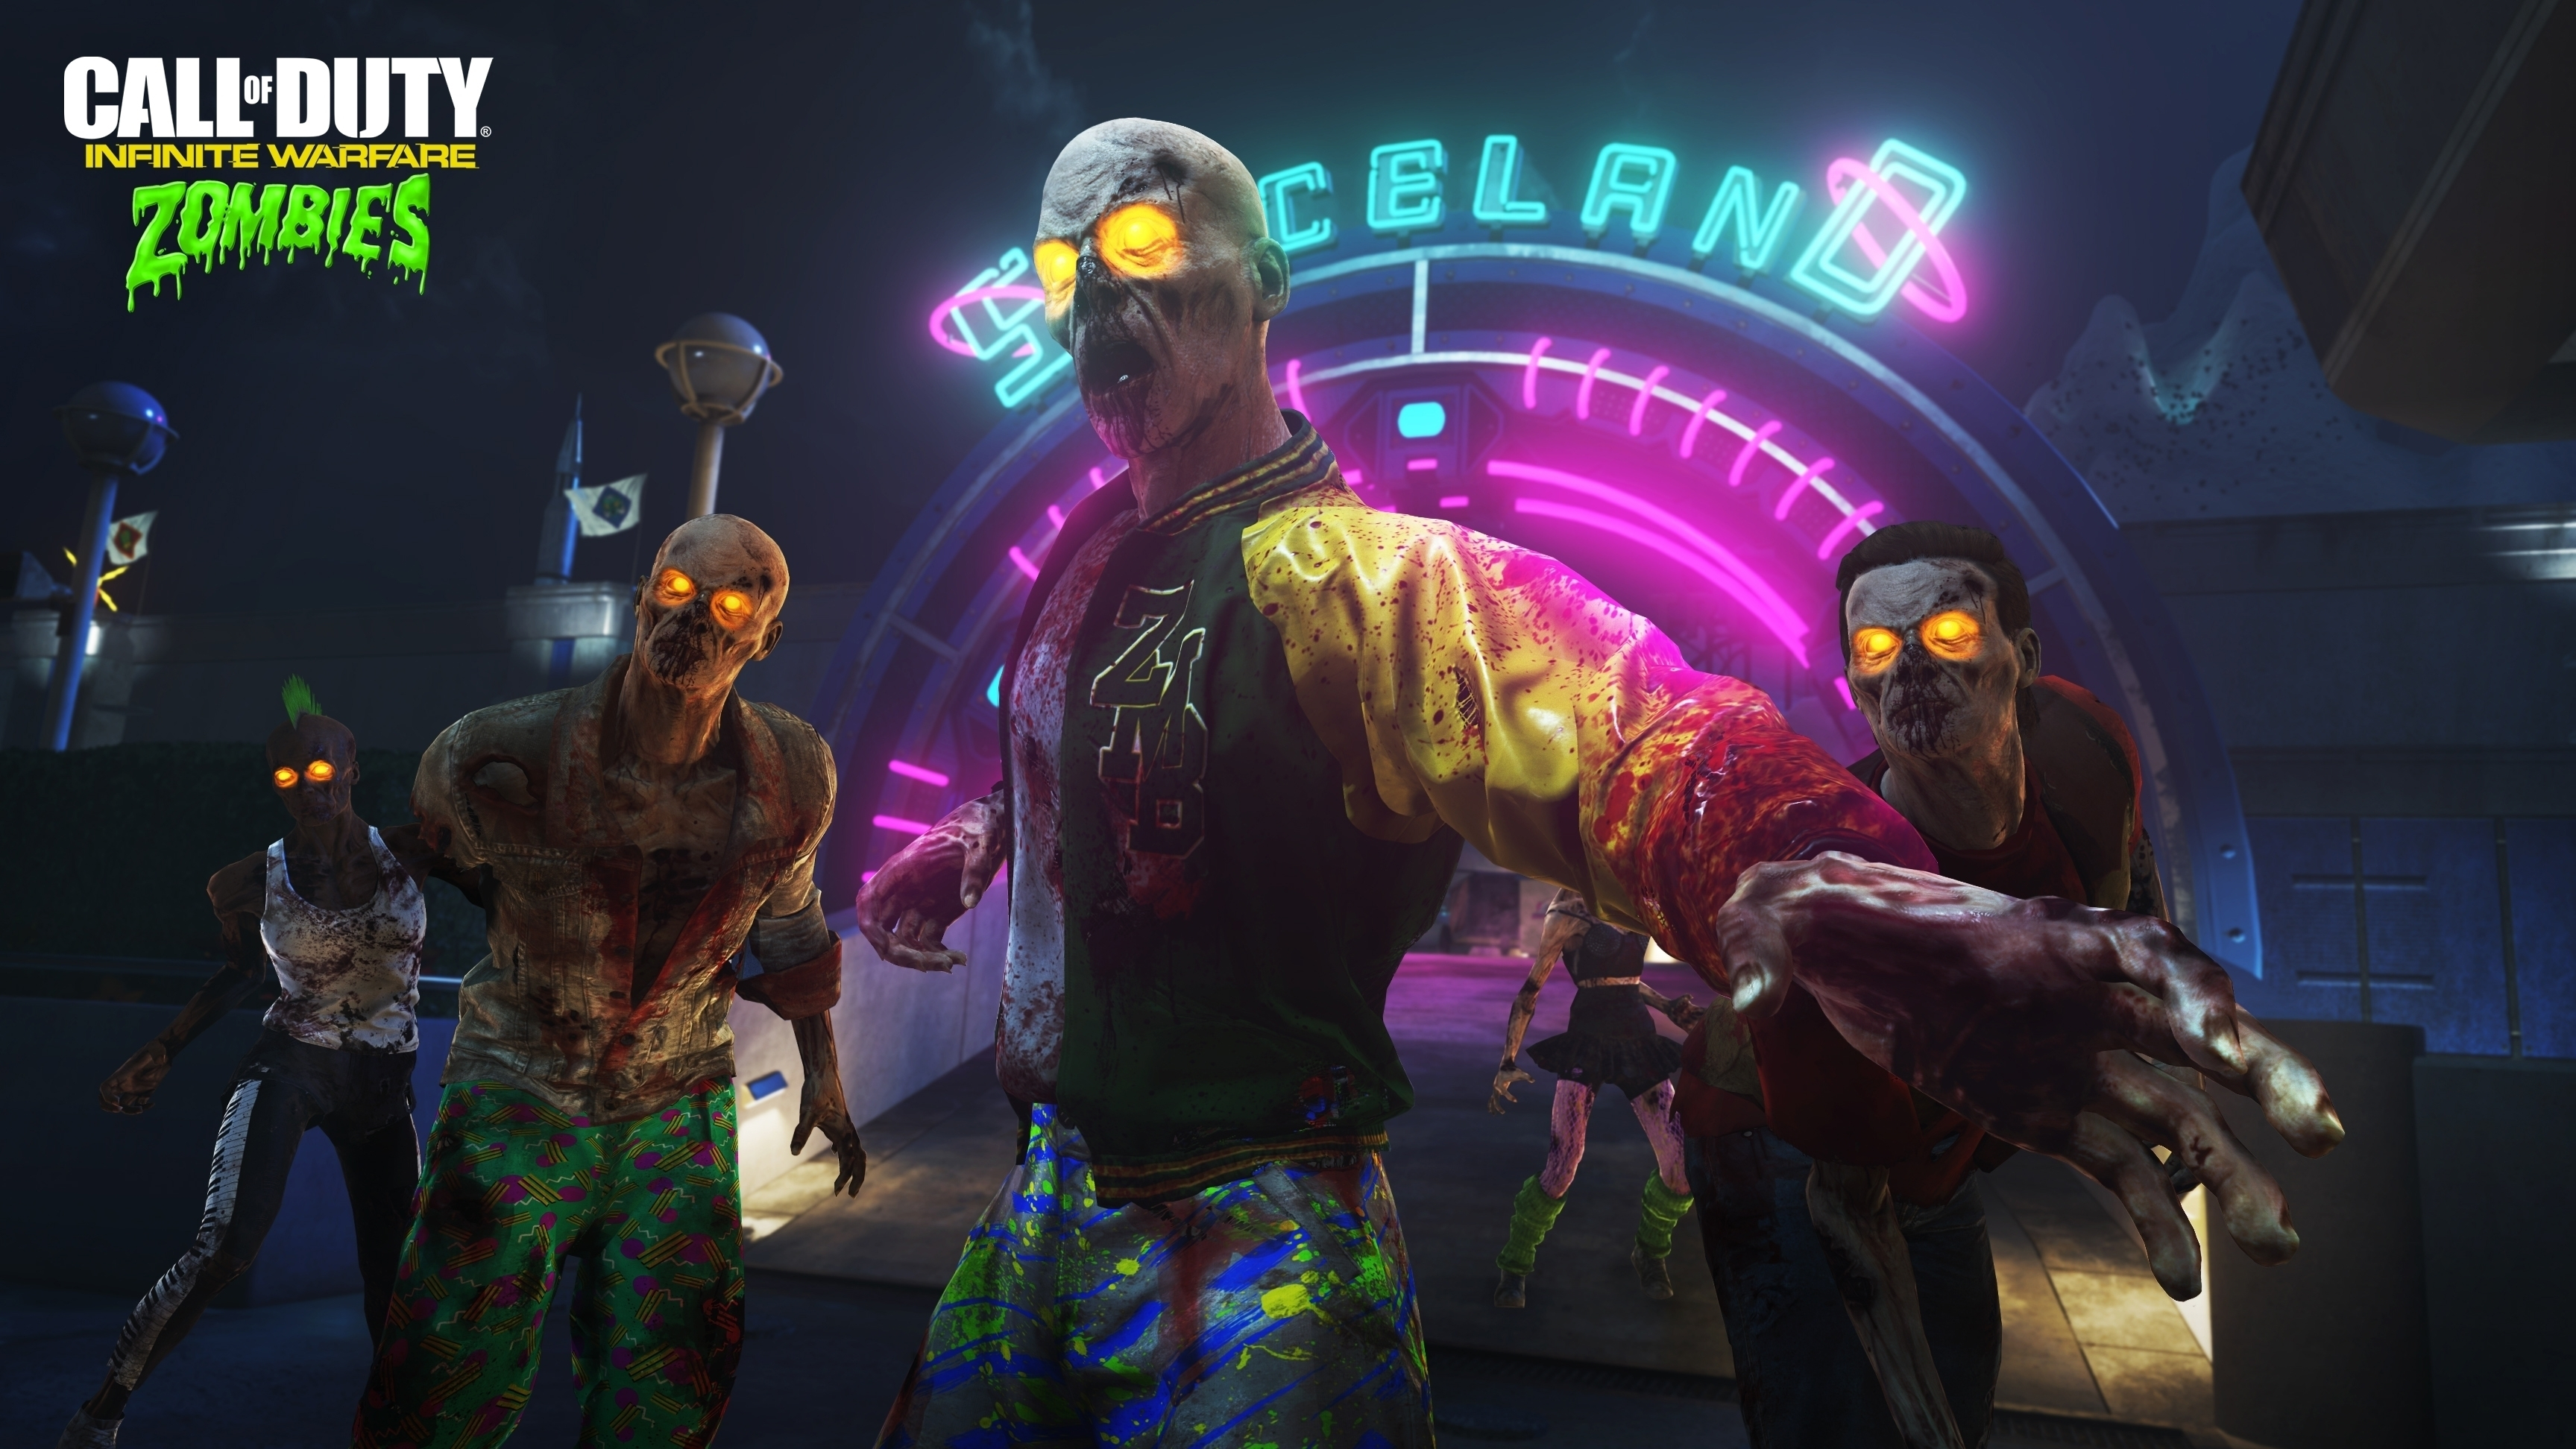 Call of Duty Infinite Warfare Zombies Spaceland wallpaper